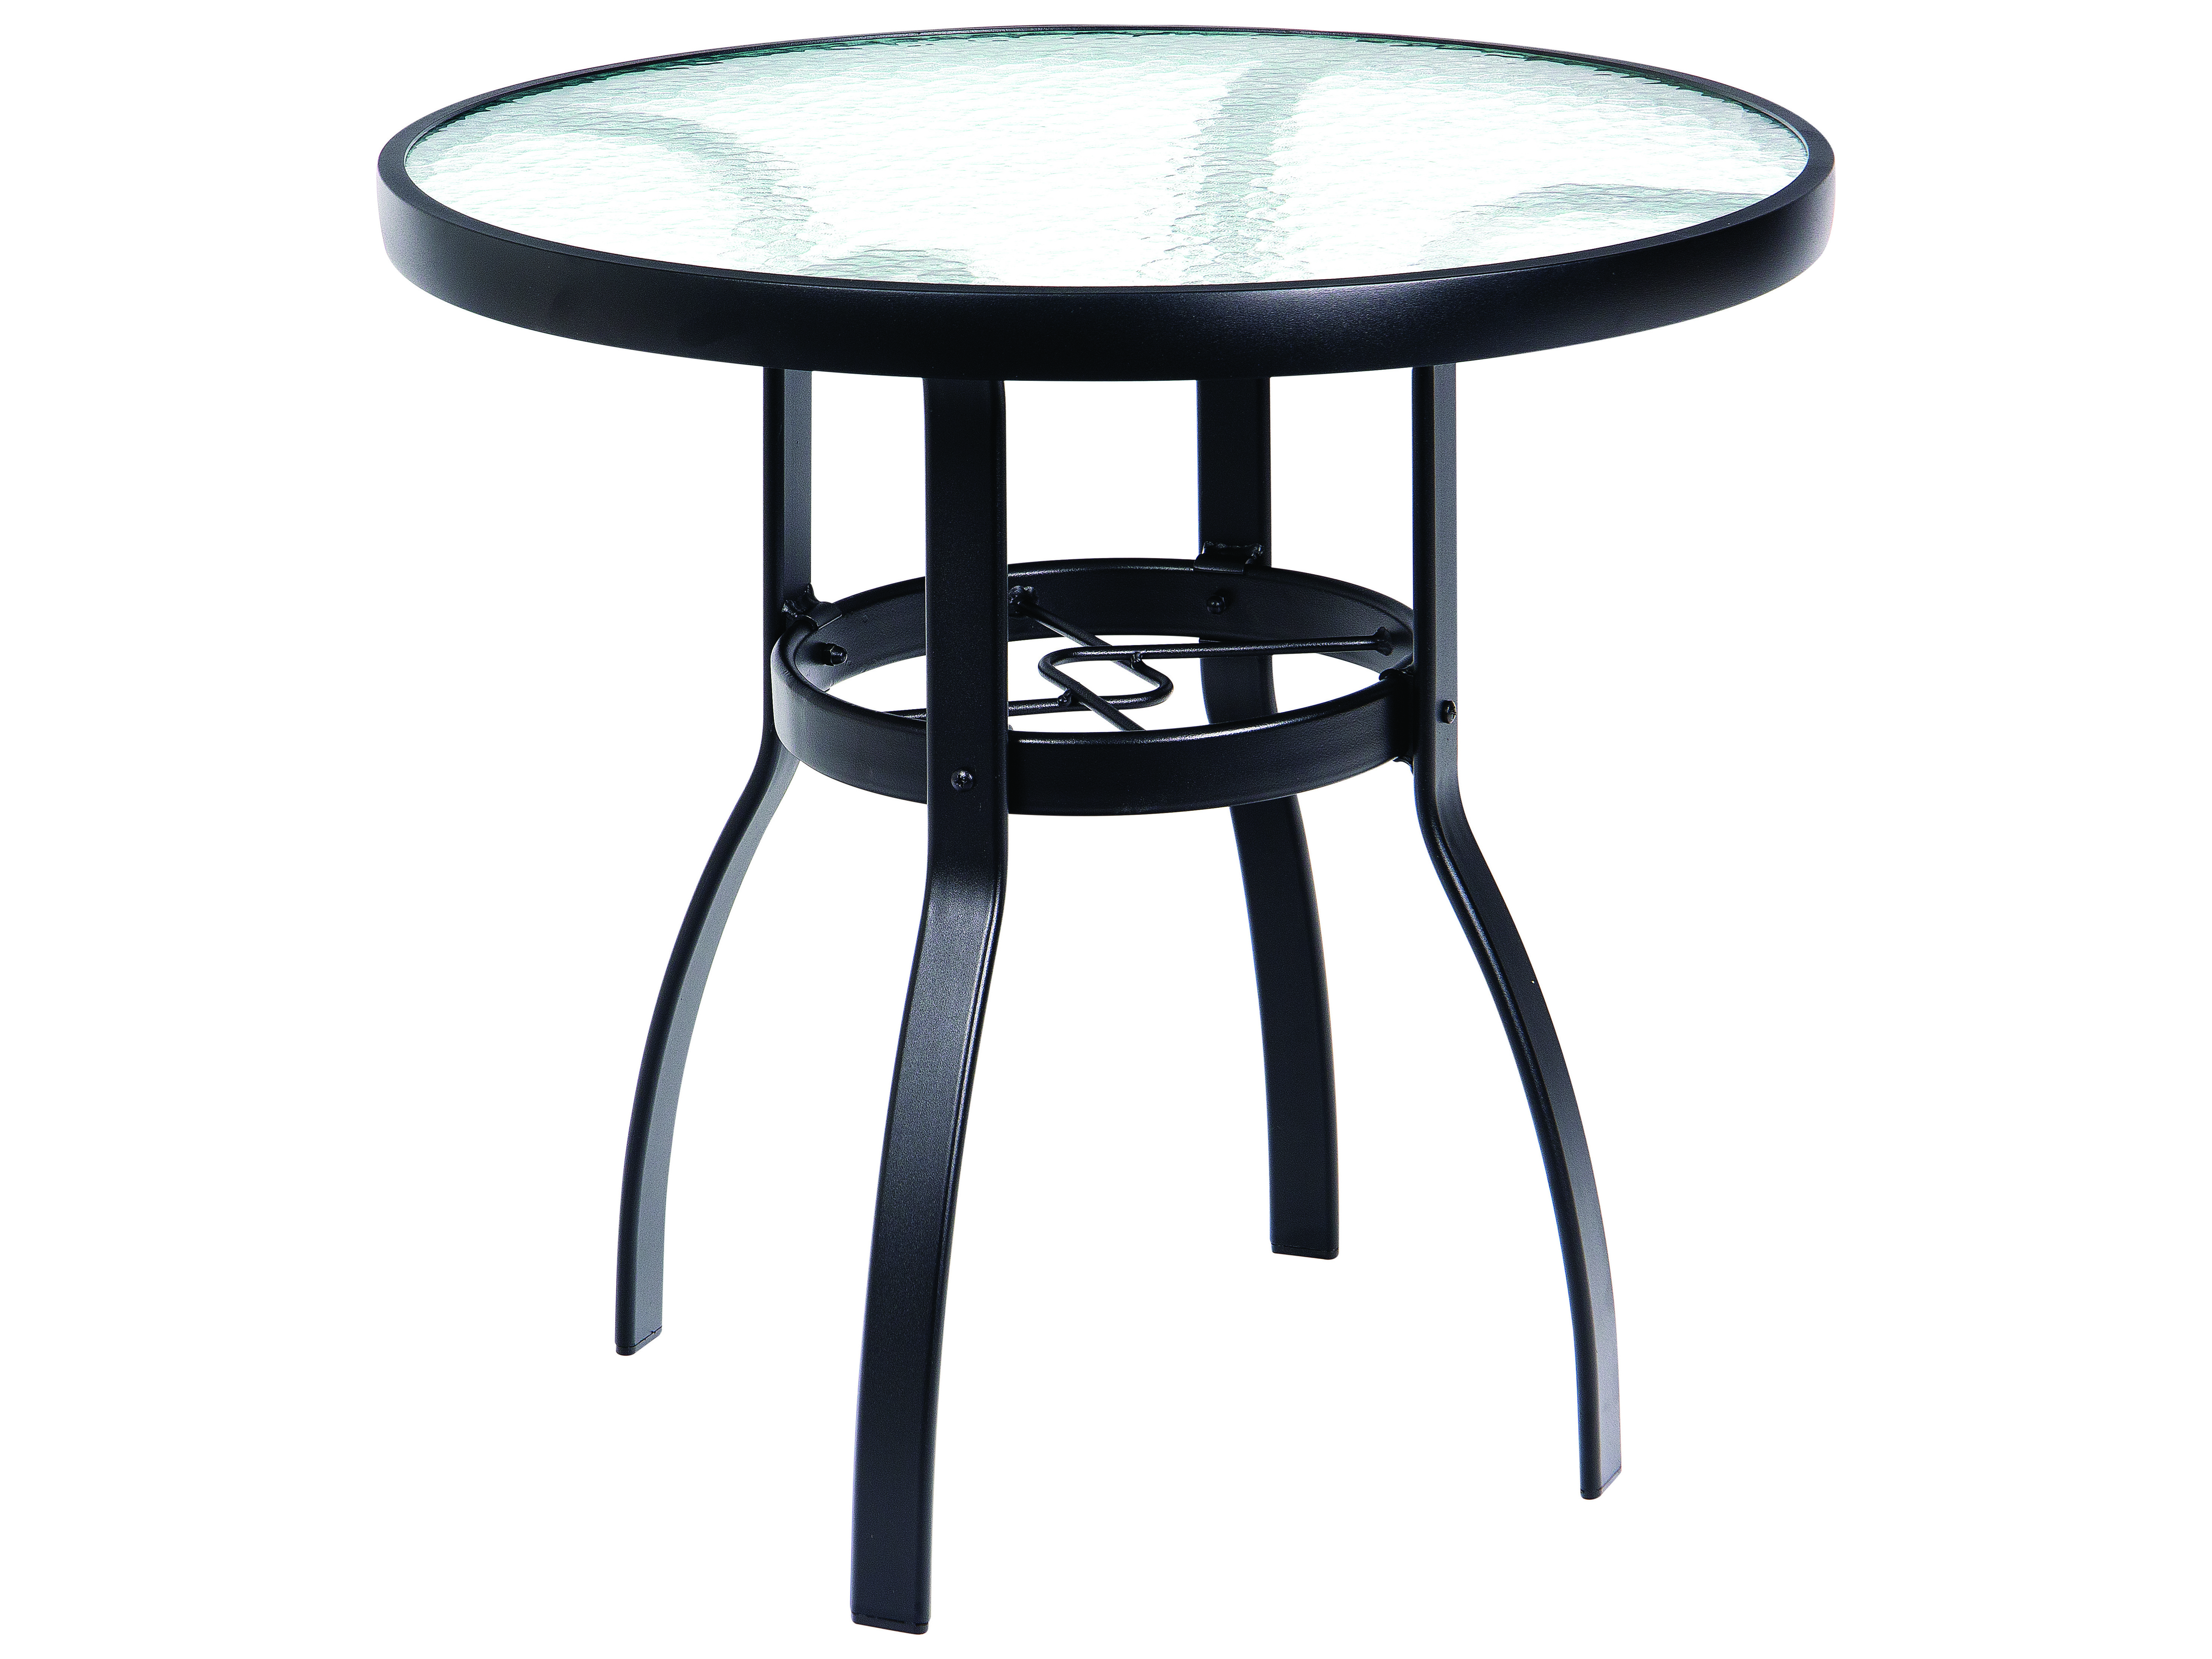 Woodard Deluxe Aluminum 30 Round Obscure Glass Top Dining